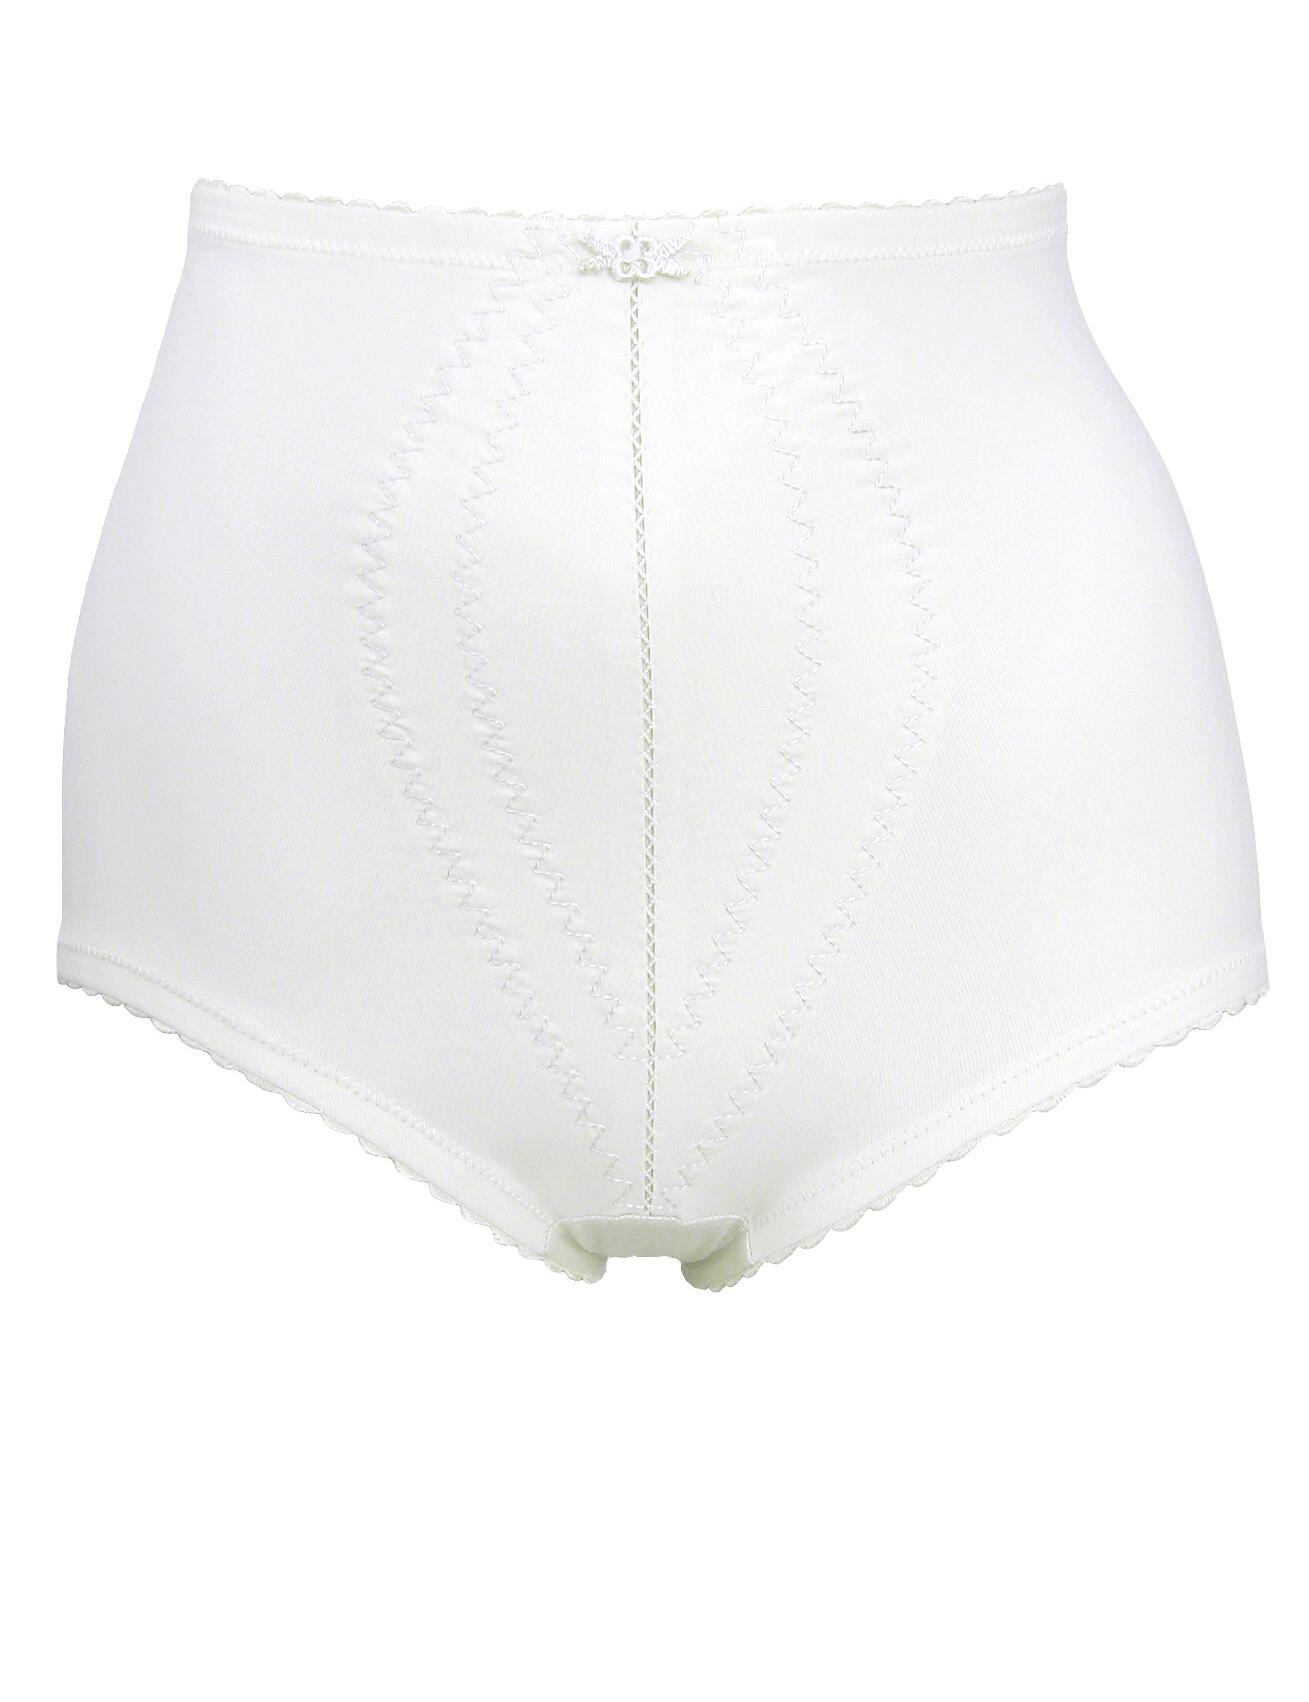 Playtex I Can't Believe it's a Girdle : Firm Control Brief P2522 - White